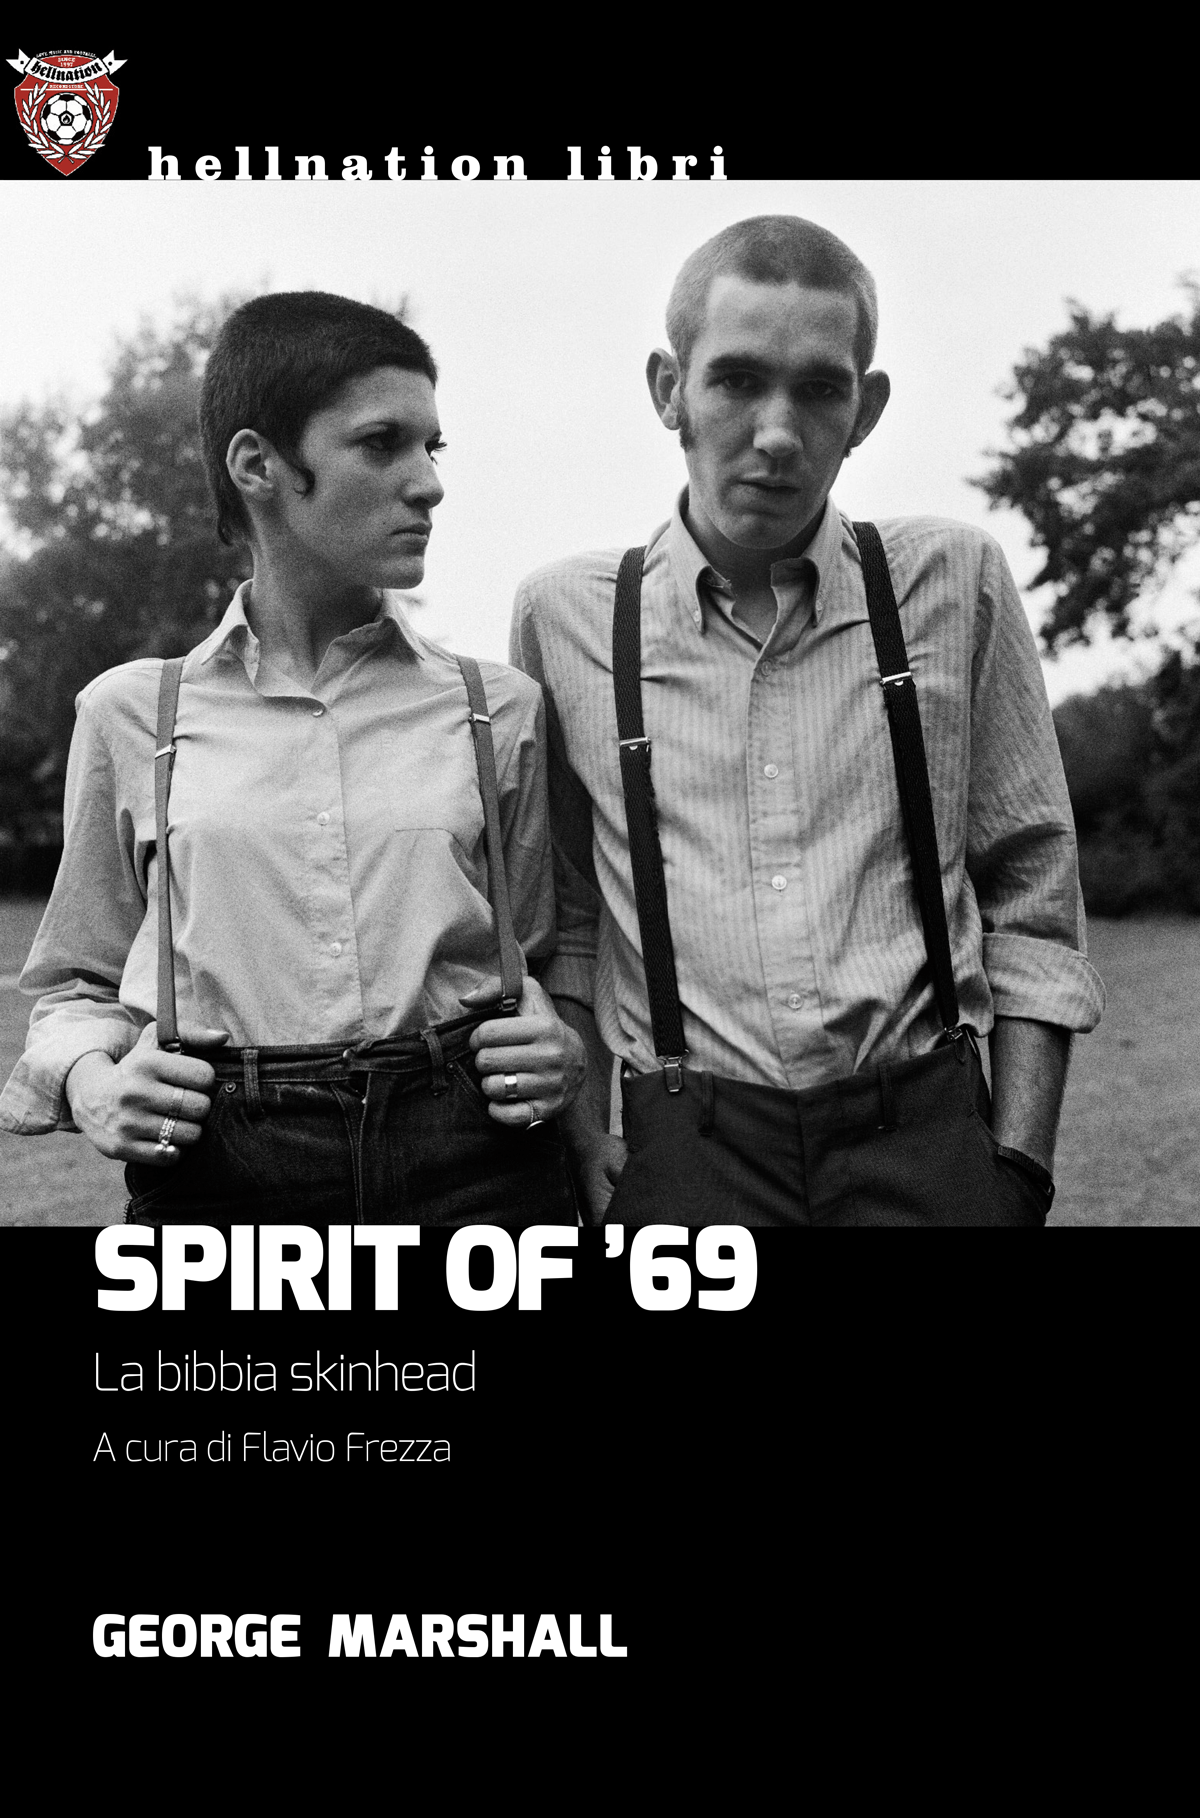 Spirit of '69 di George Marshall, edizione italiana a cura di Flavio Frezza